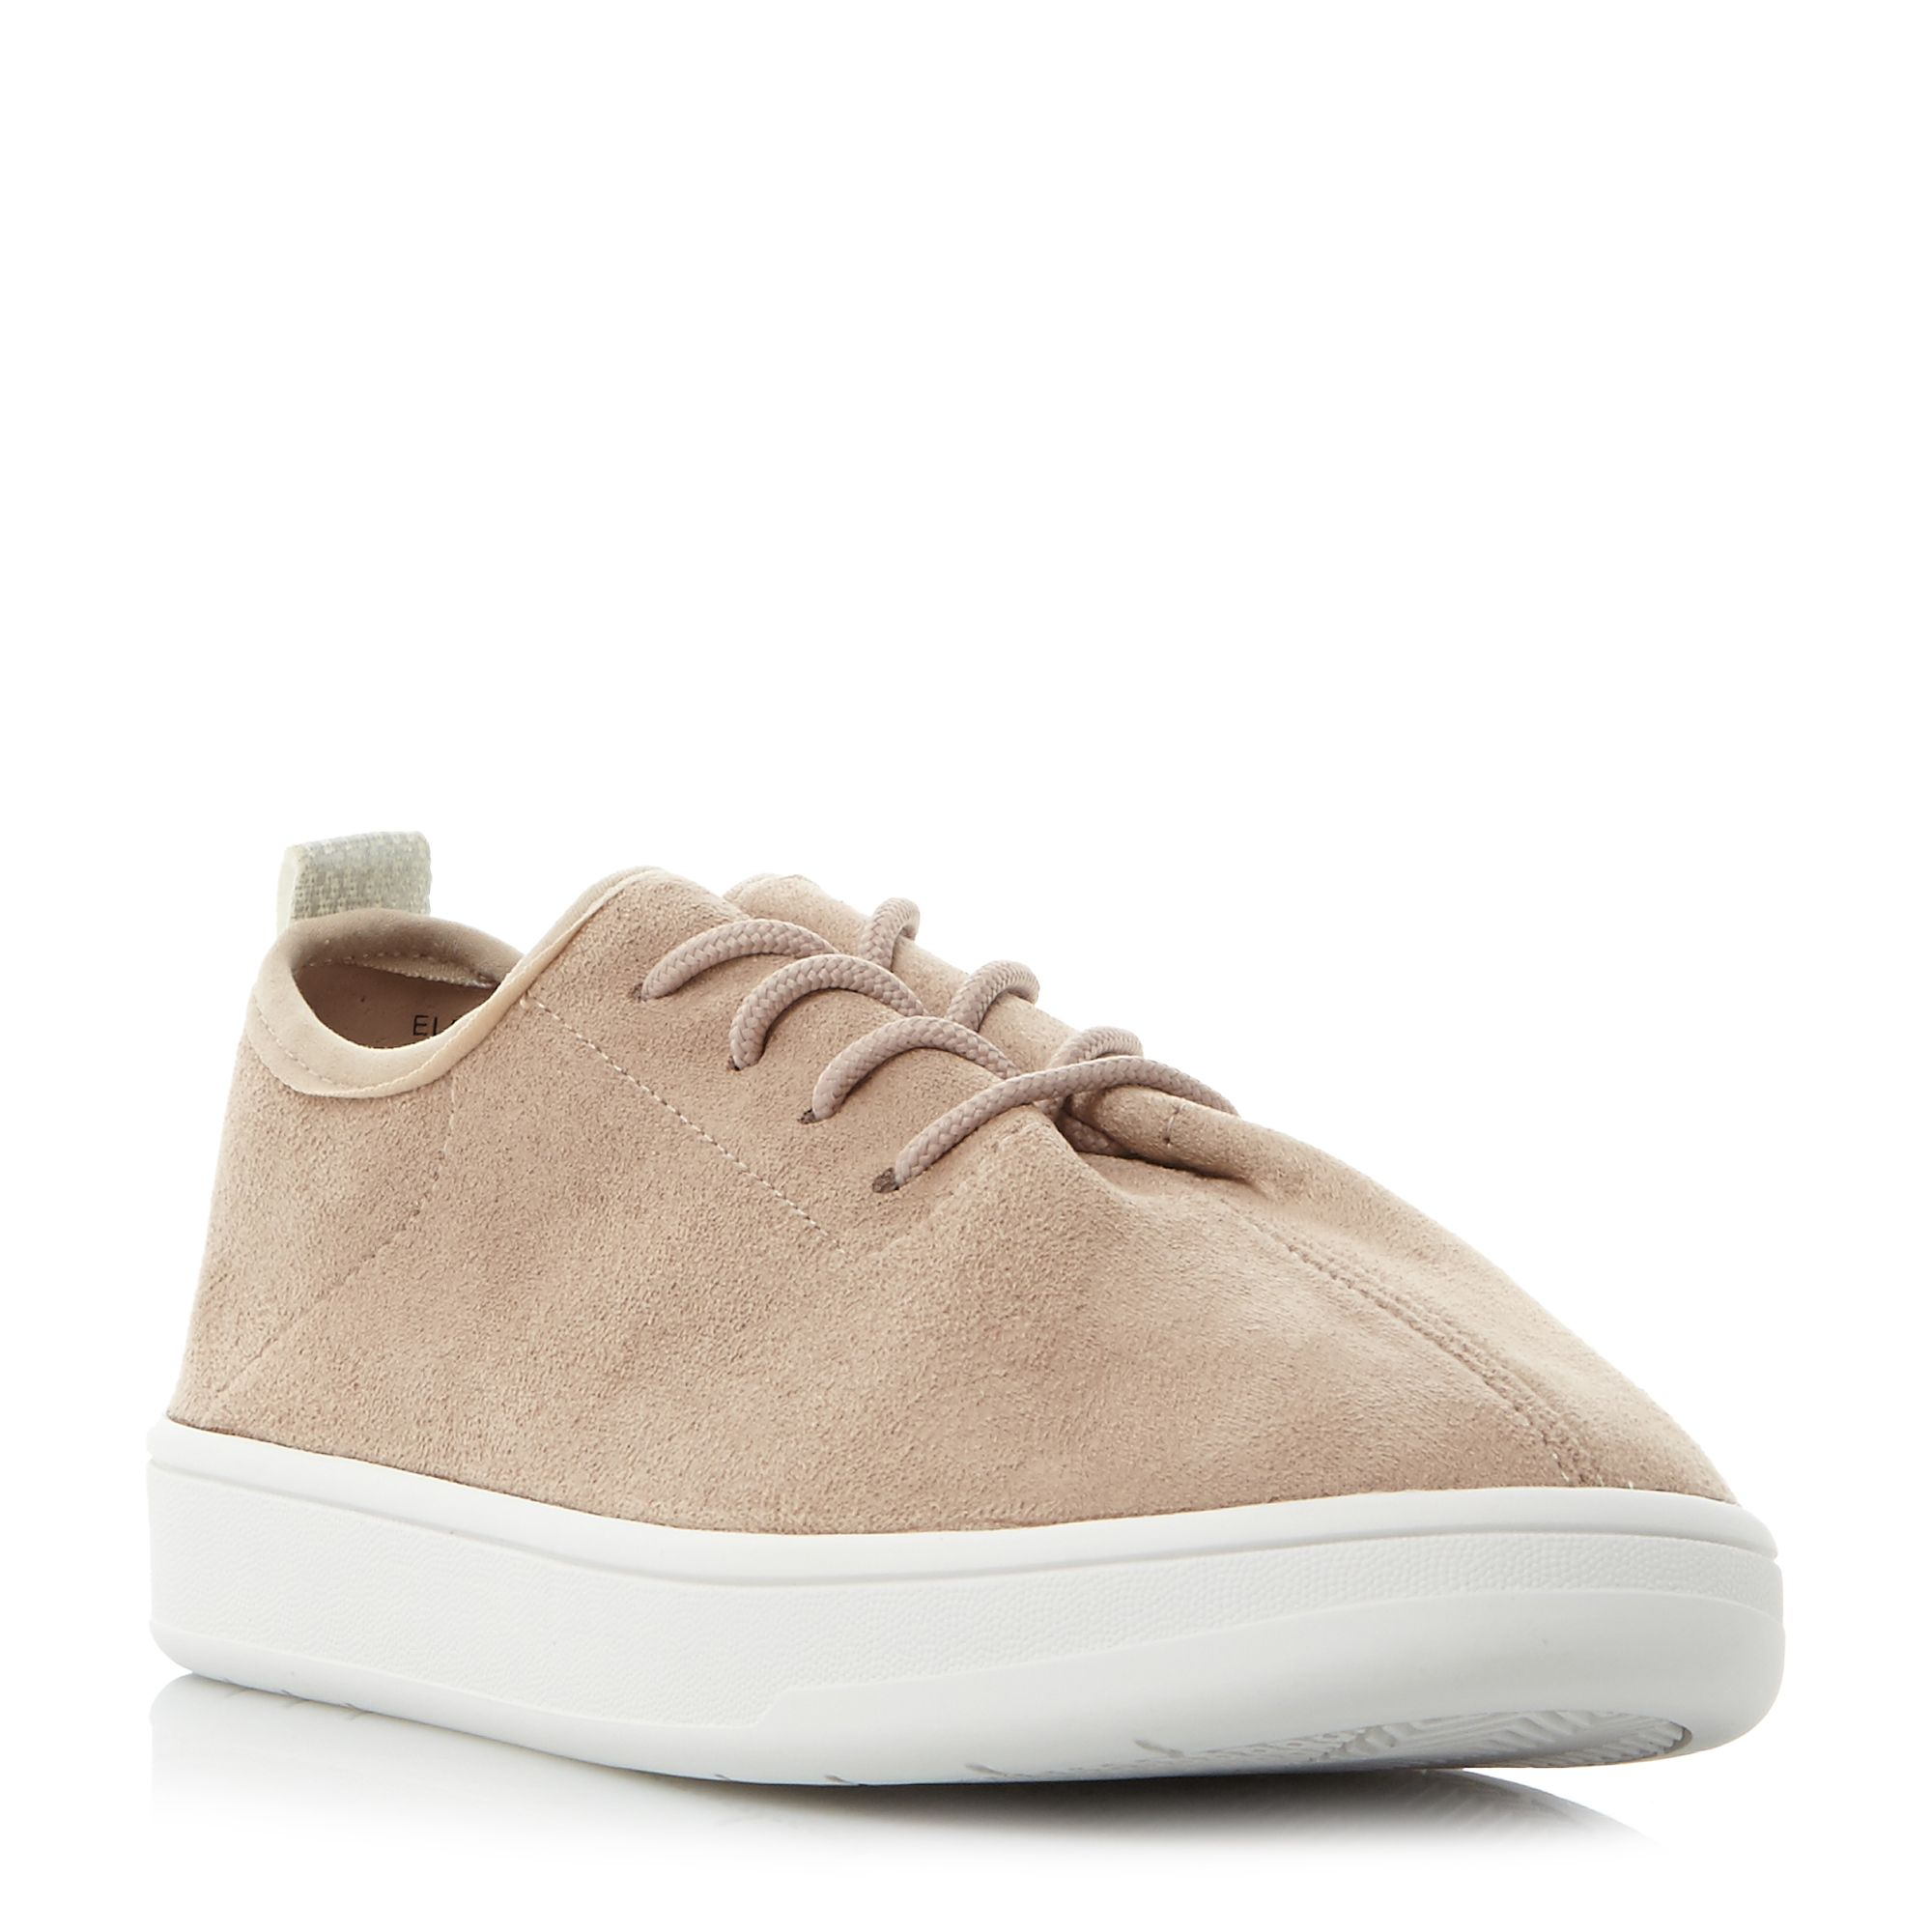 Steve Madden ELEXA SM LACE UP TRAINERS, White